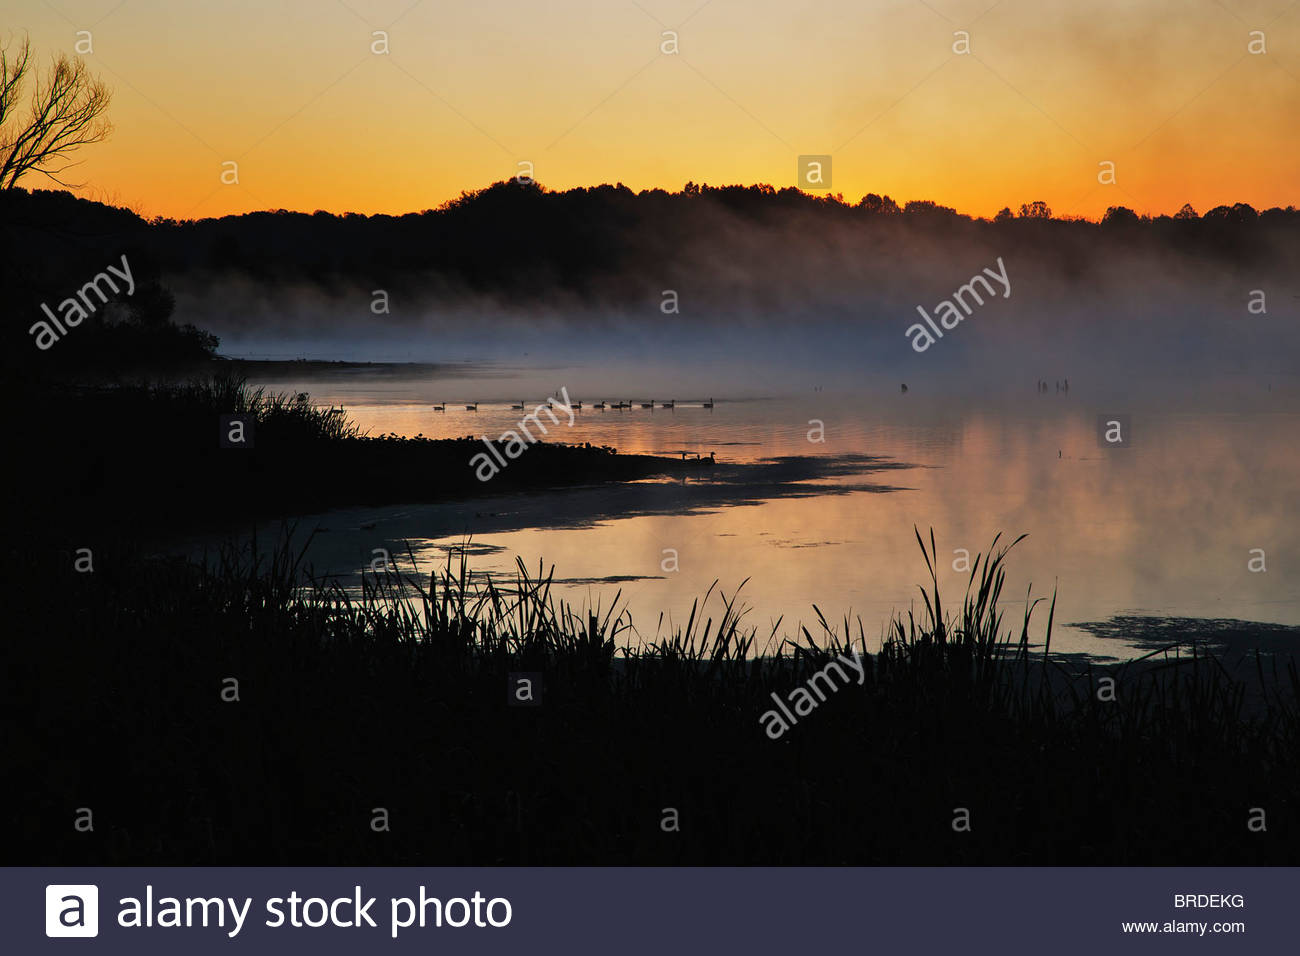 Sunrise over marsh with geese and fog - Stock Image